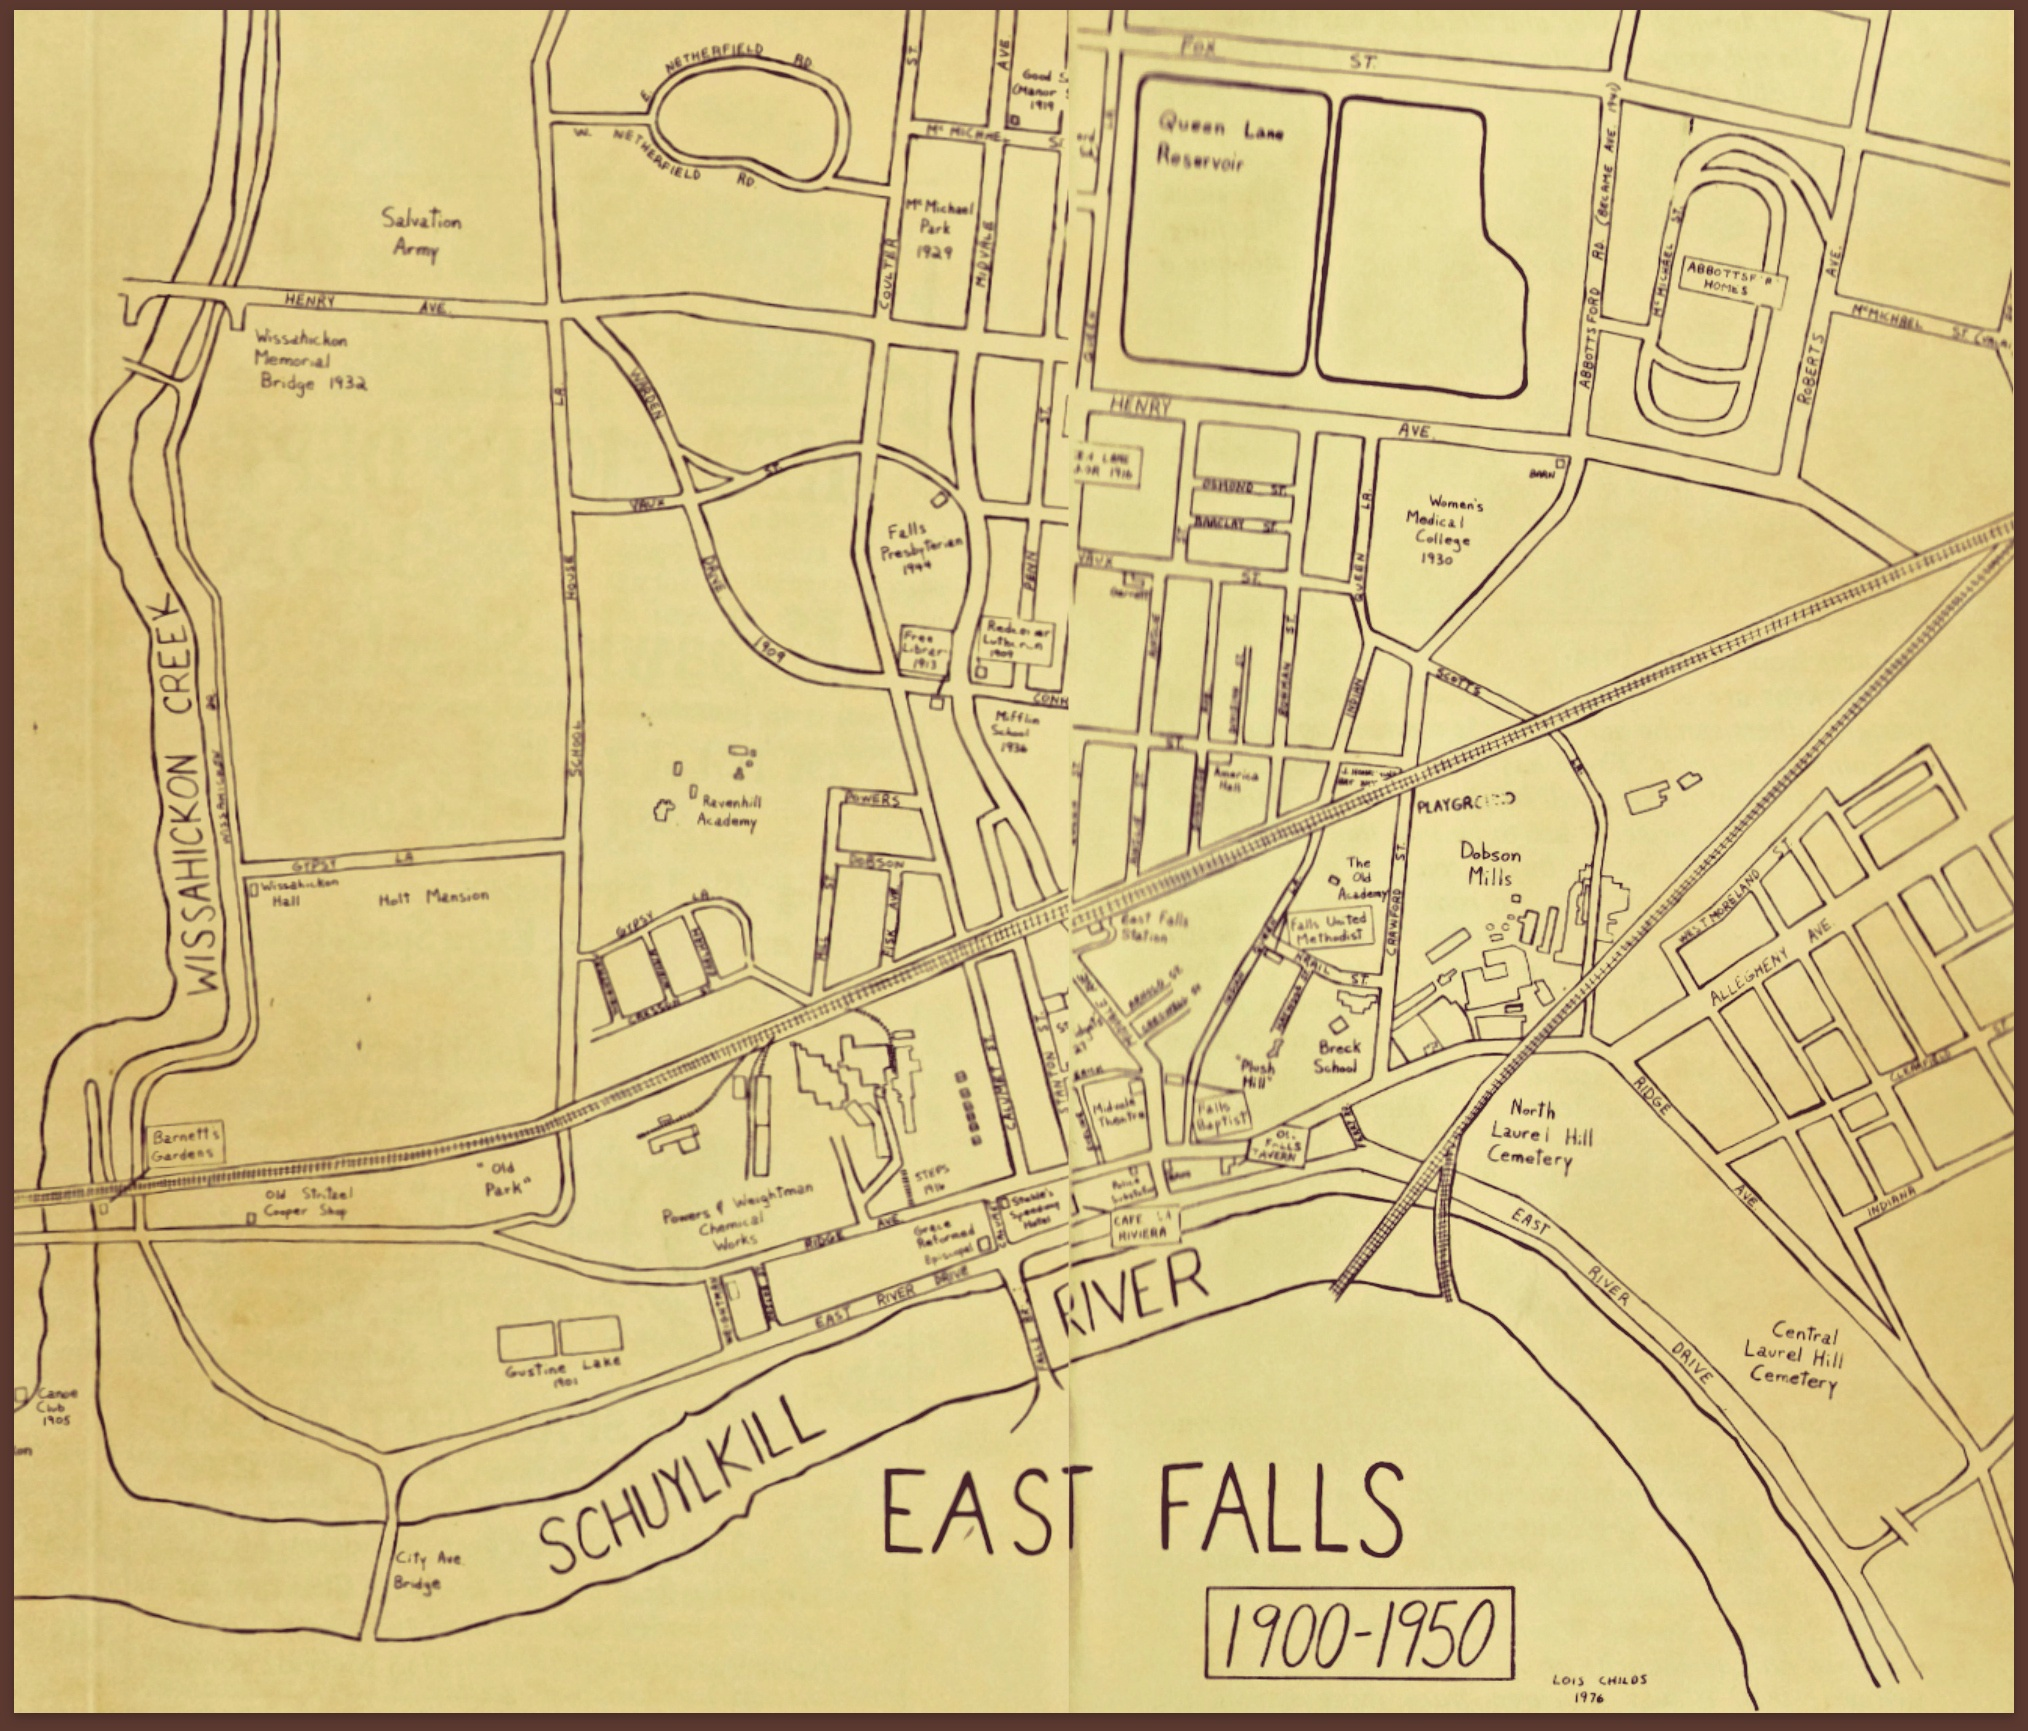 East Falls Local 300 years map 1900 to 1950 guest blogger russ gardner, sr \u201cgrowing up in east falls\u201d east dwyer 1950 wiring diagram at gsmportal.co